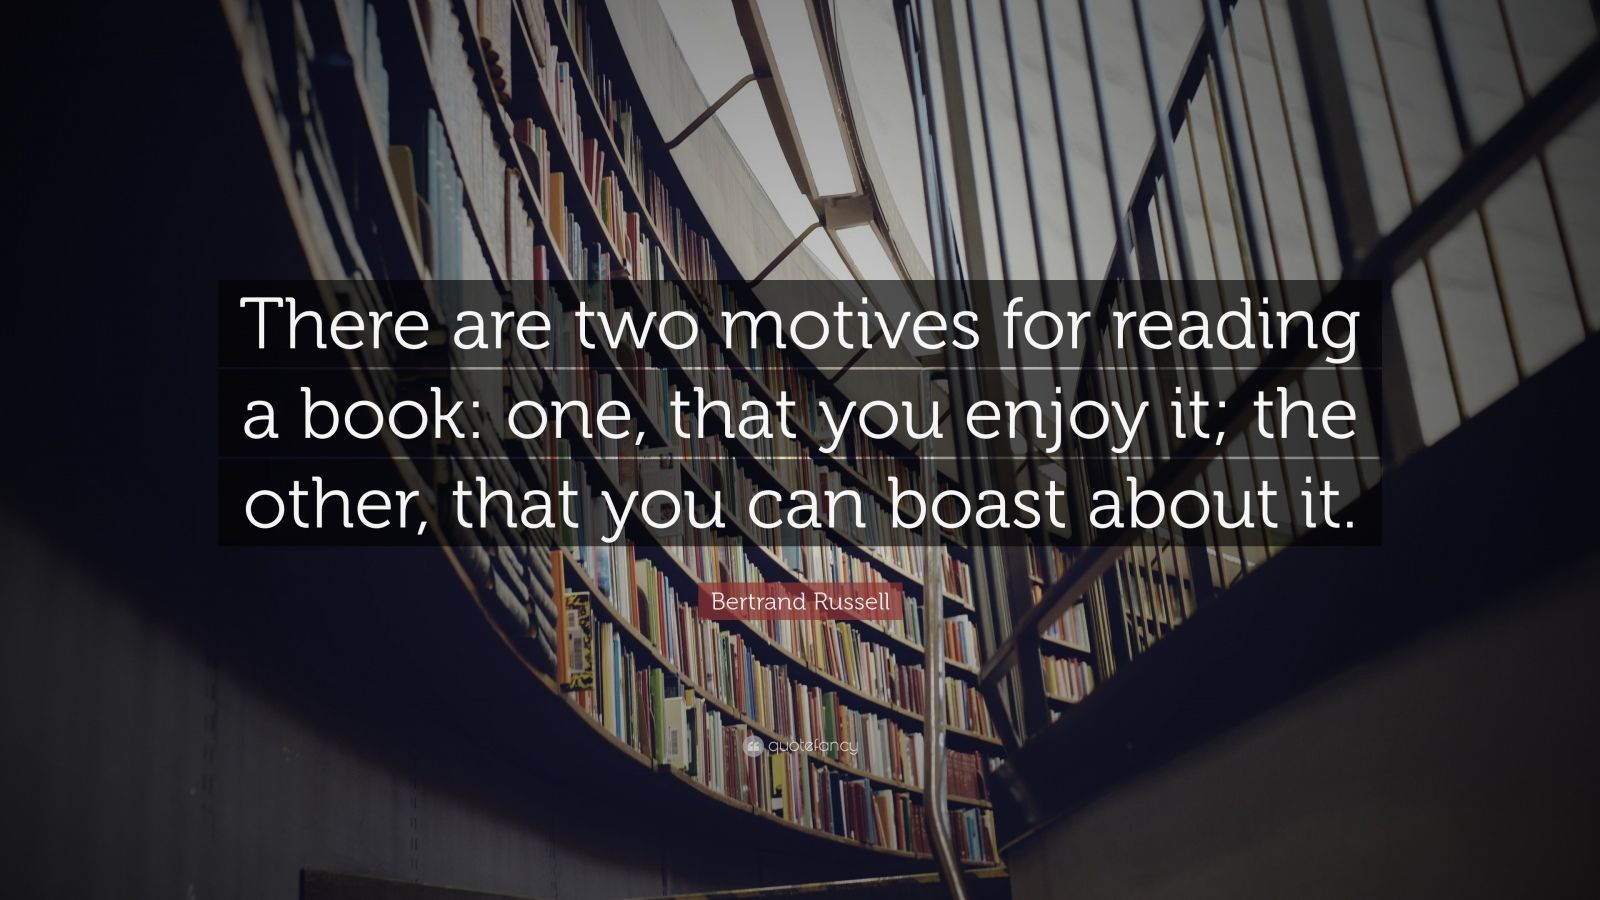 """Bertrand Russell Quote: """"There are two motives for reading a book: one, that you enjoy it; the other, that you can boast about it."""""""